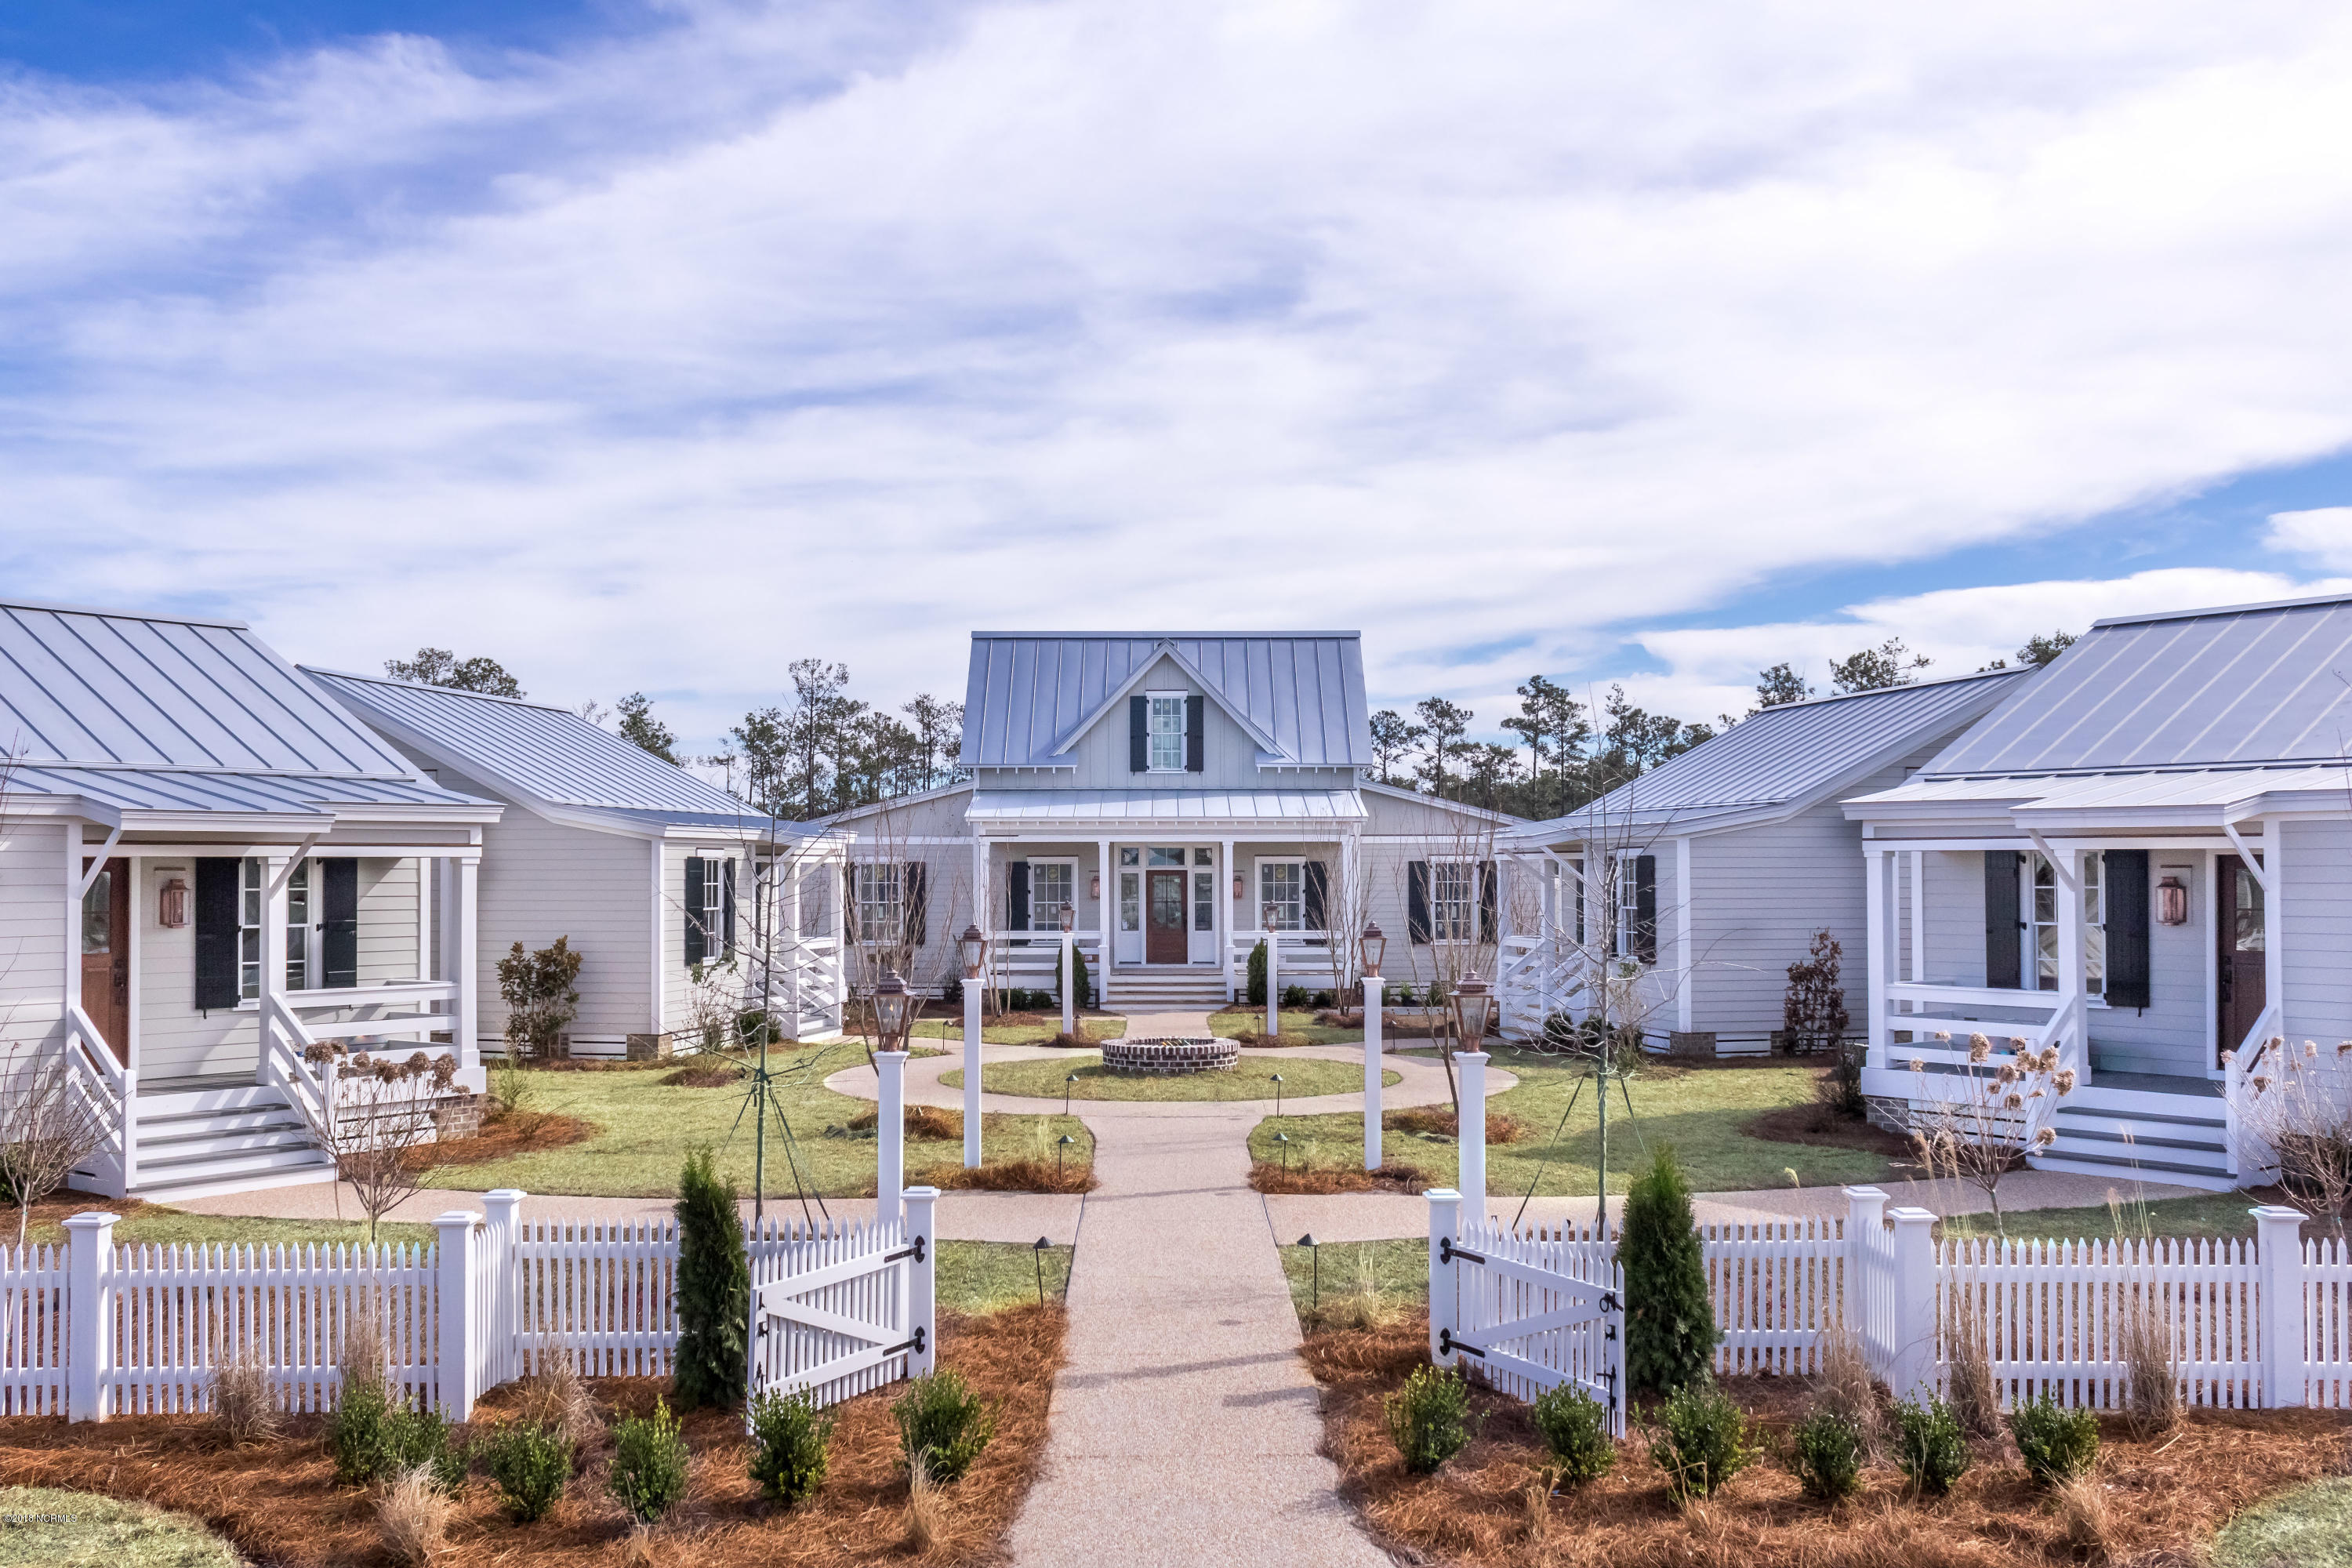 17 Back Cove Circle, Oriental, North Carolina 28571, 1 Bedroom Bedrooms, 1 Room Rooms,1 BathroomBathrooms,Single family residence,For sale,Back Cove,100109663